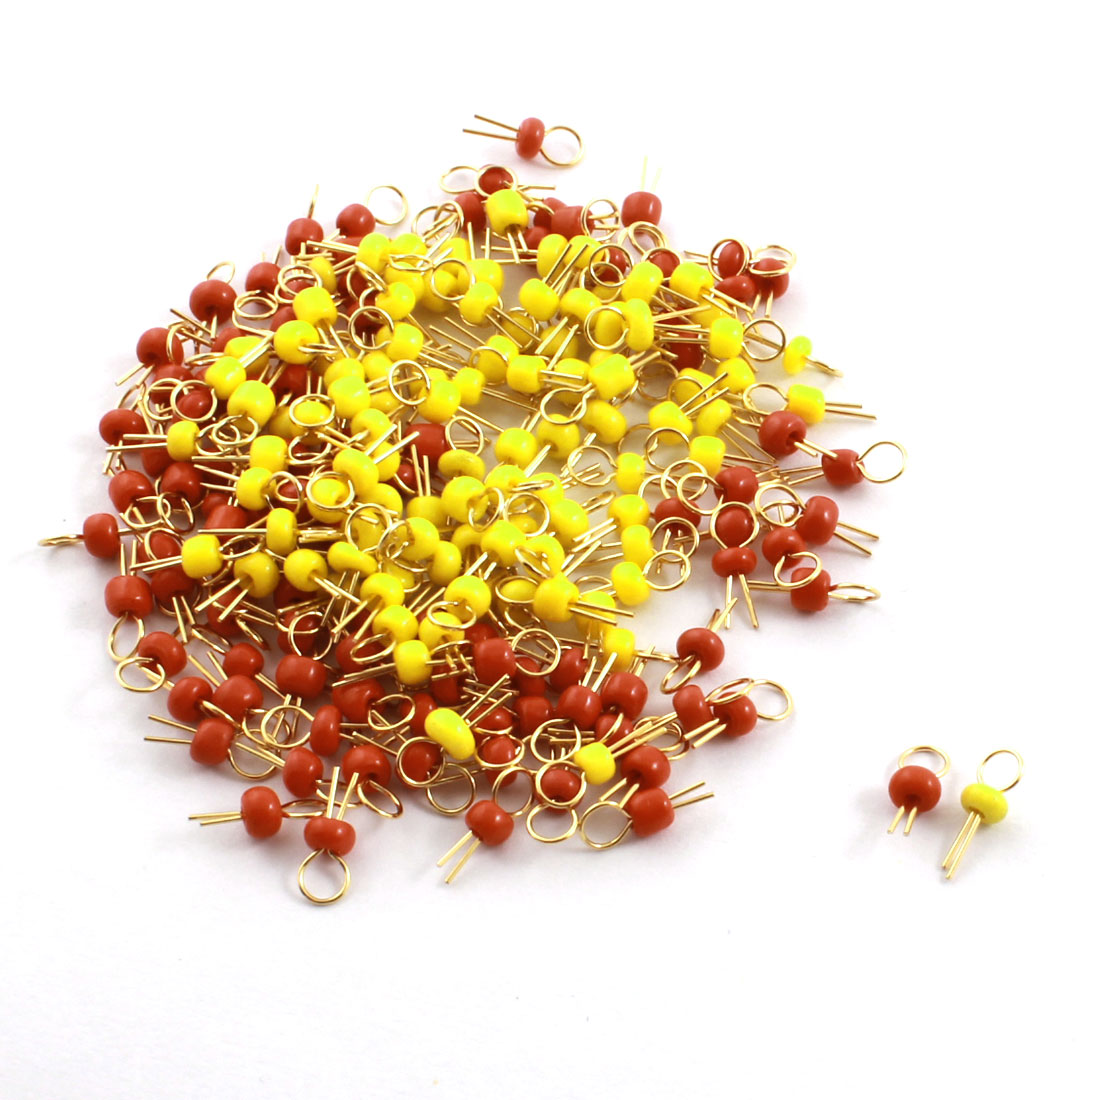 200 x PCB Board Breadboard DIY Electronic Test Endpoint Pin Red + Yellow